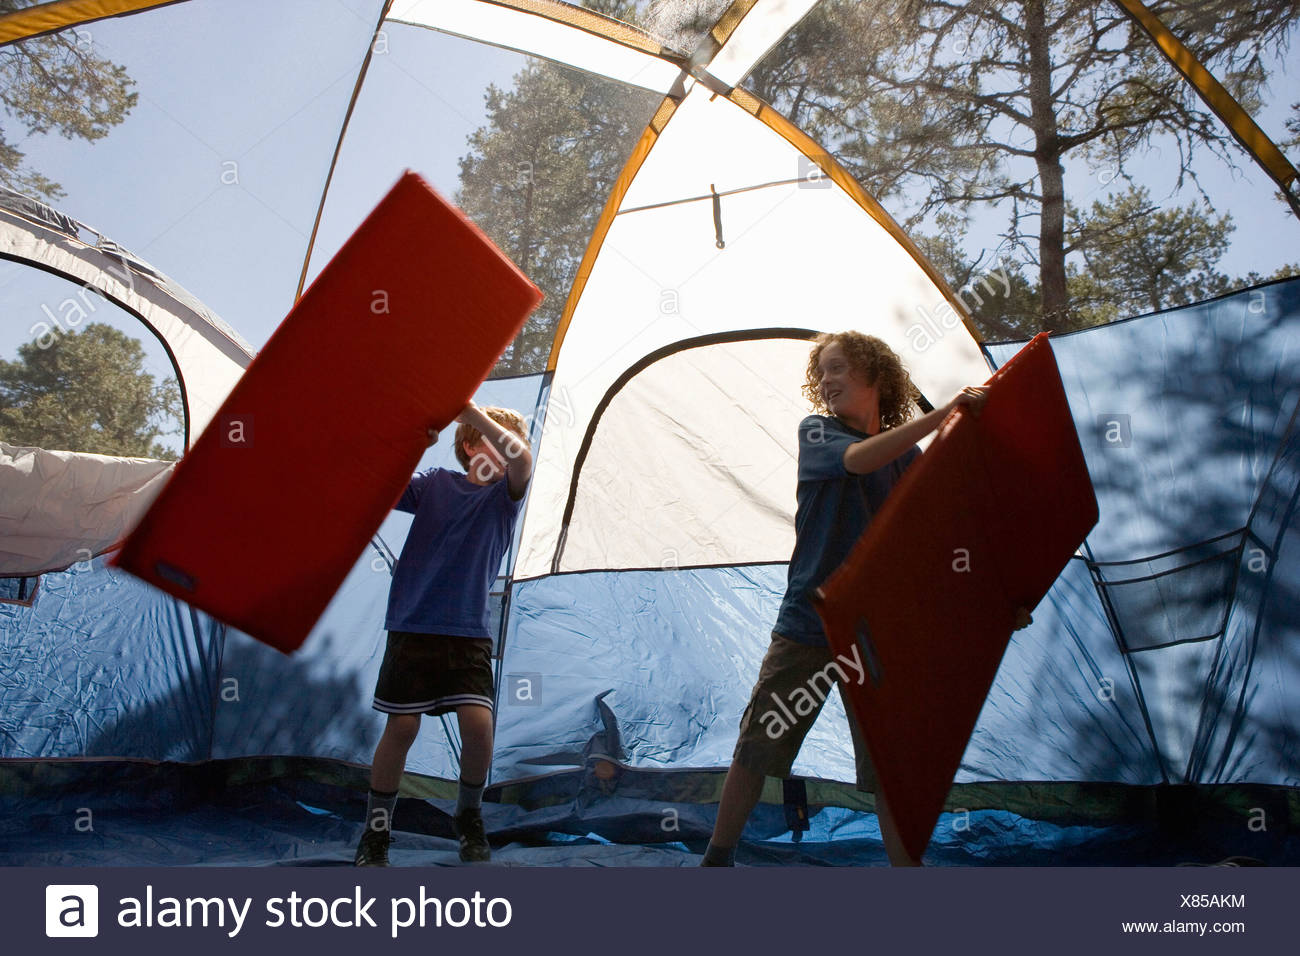 Two boys playing with inflatable mattresses in a tent - Stock Image